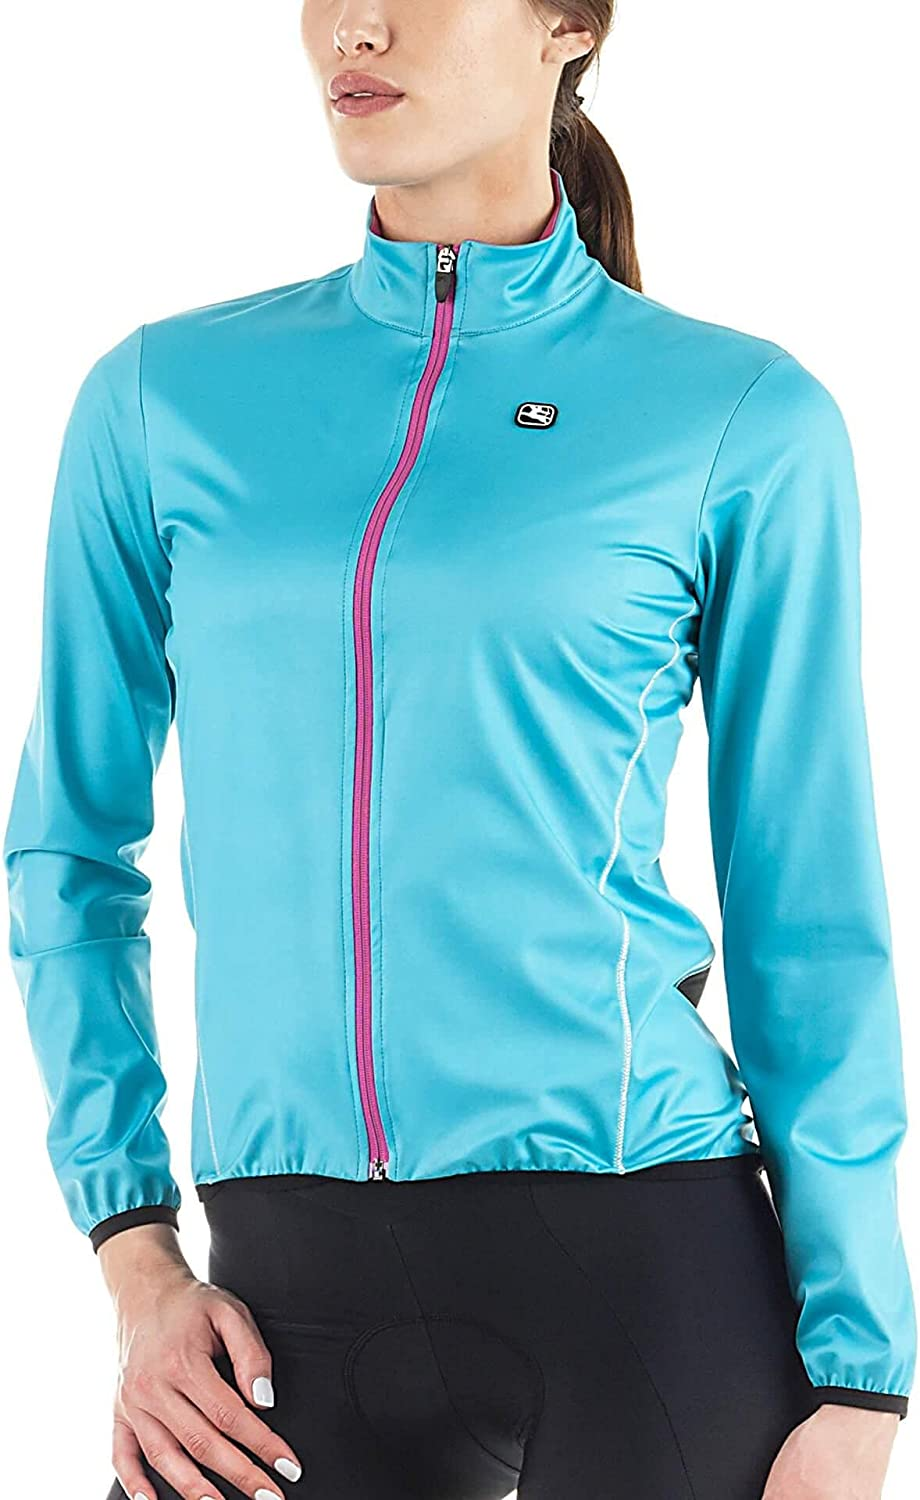 Giordana Fusion Women's Excellence Jacket quality assurance Cycling